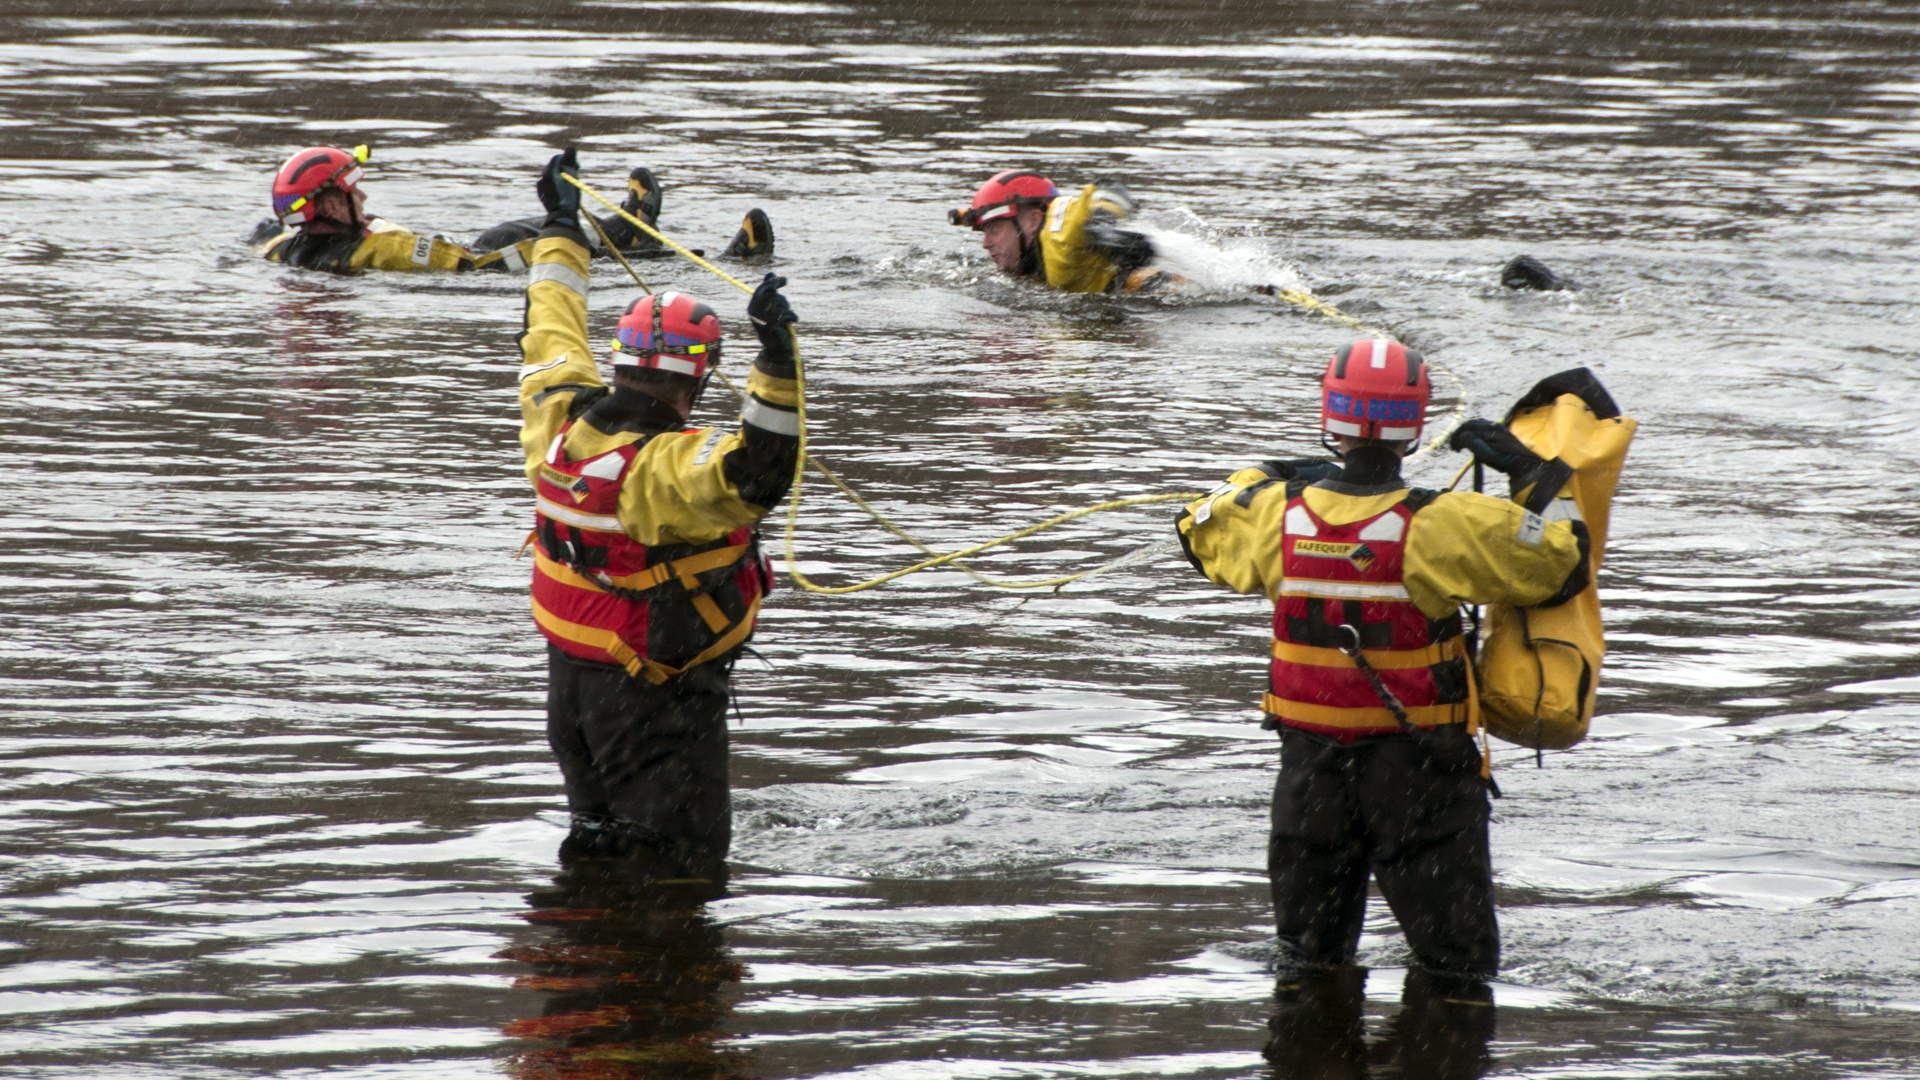 Firefighters rescue man from River Tay